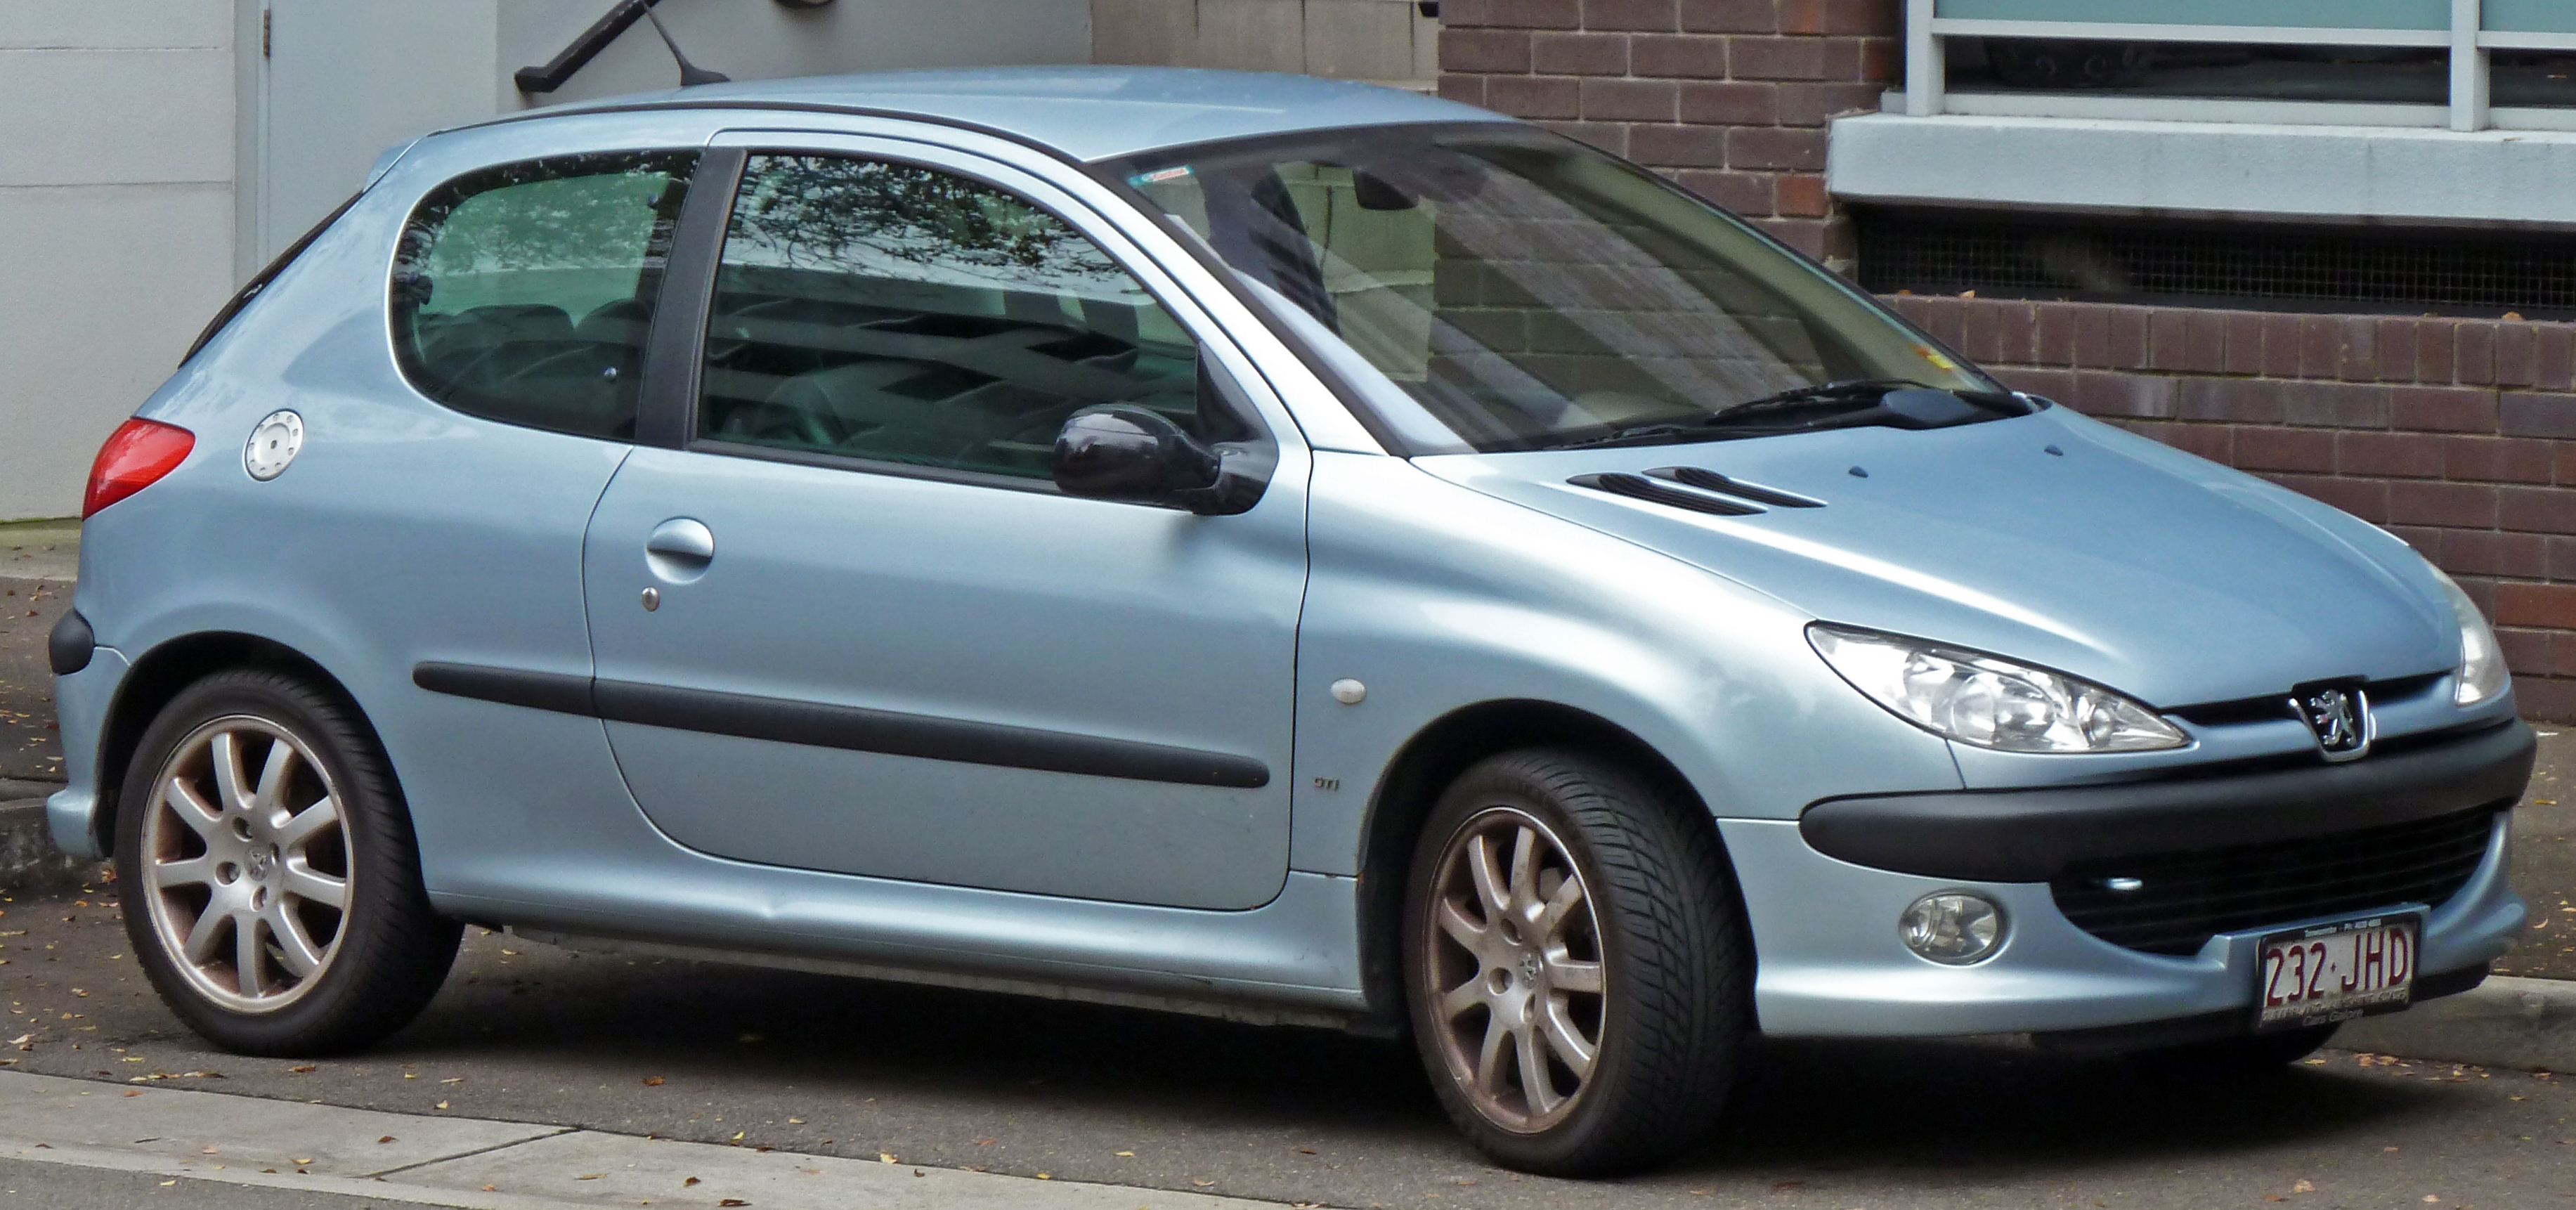 file 2001 2003 peugeot 206 t1 gti 3 door hatchback. Black Bedroom Furniture Sets. Home Design Ideas